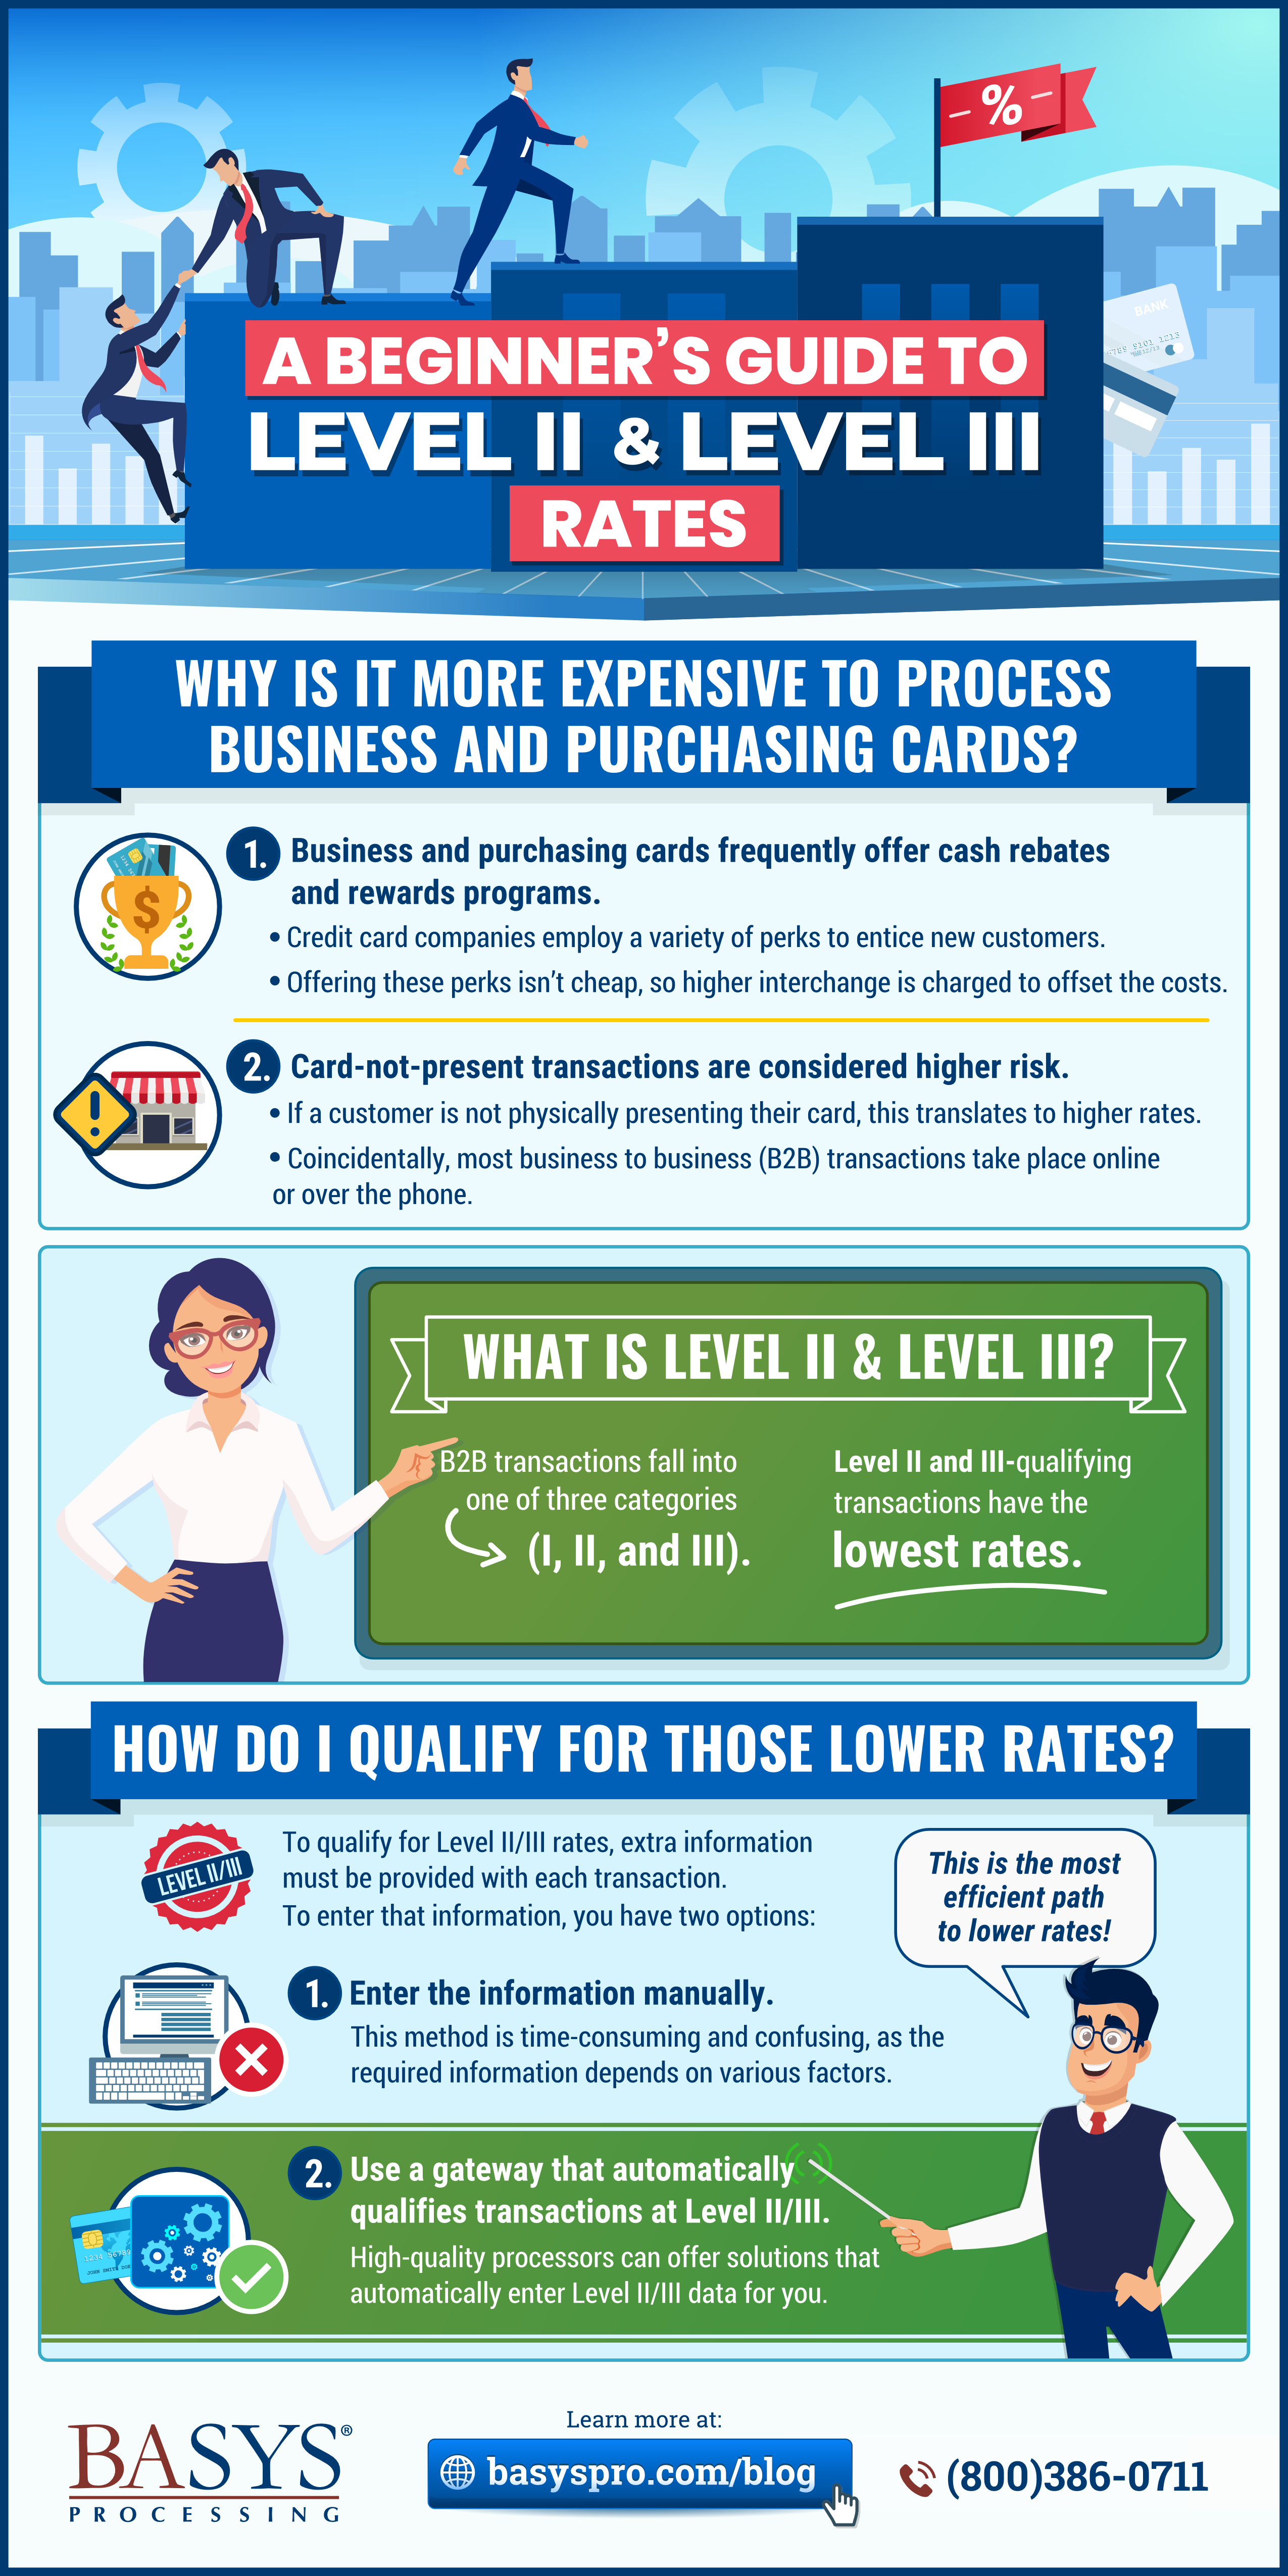 A Beginner's Guide to Level II & Level III Rates